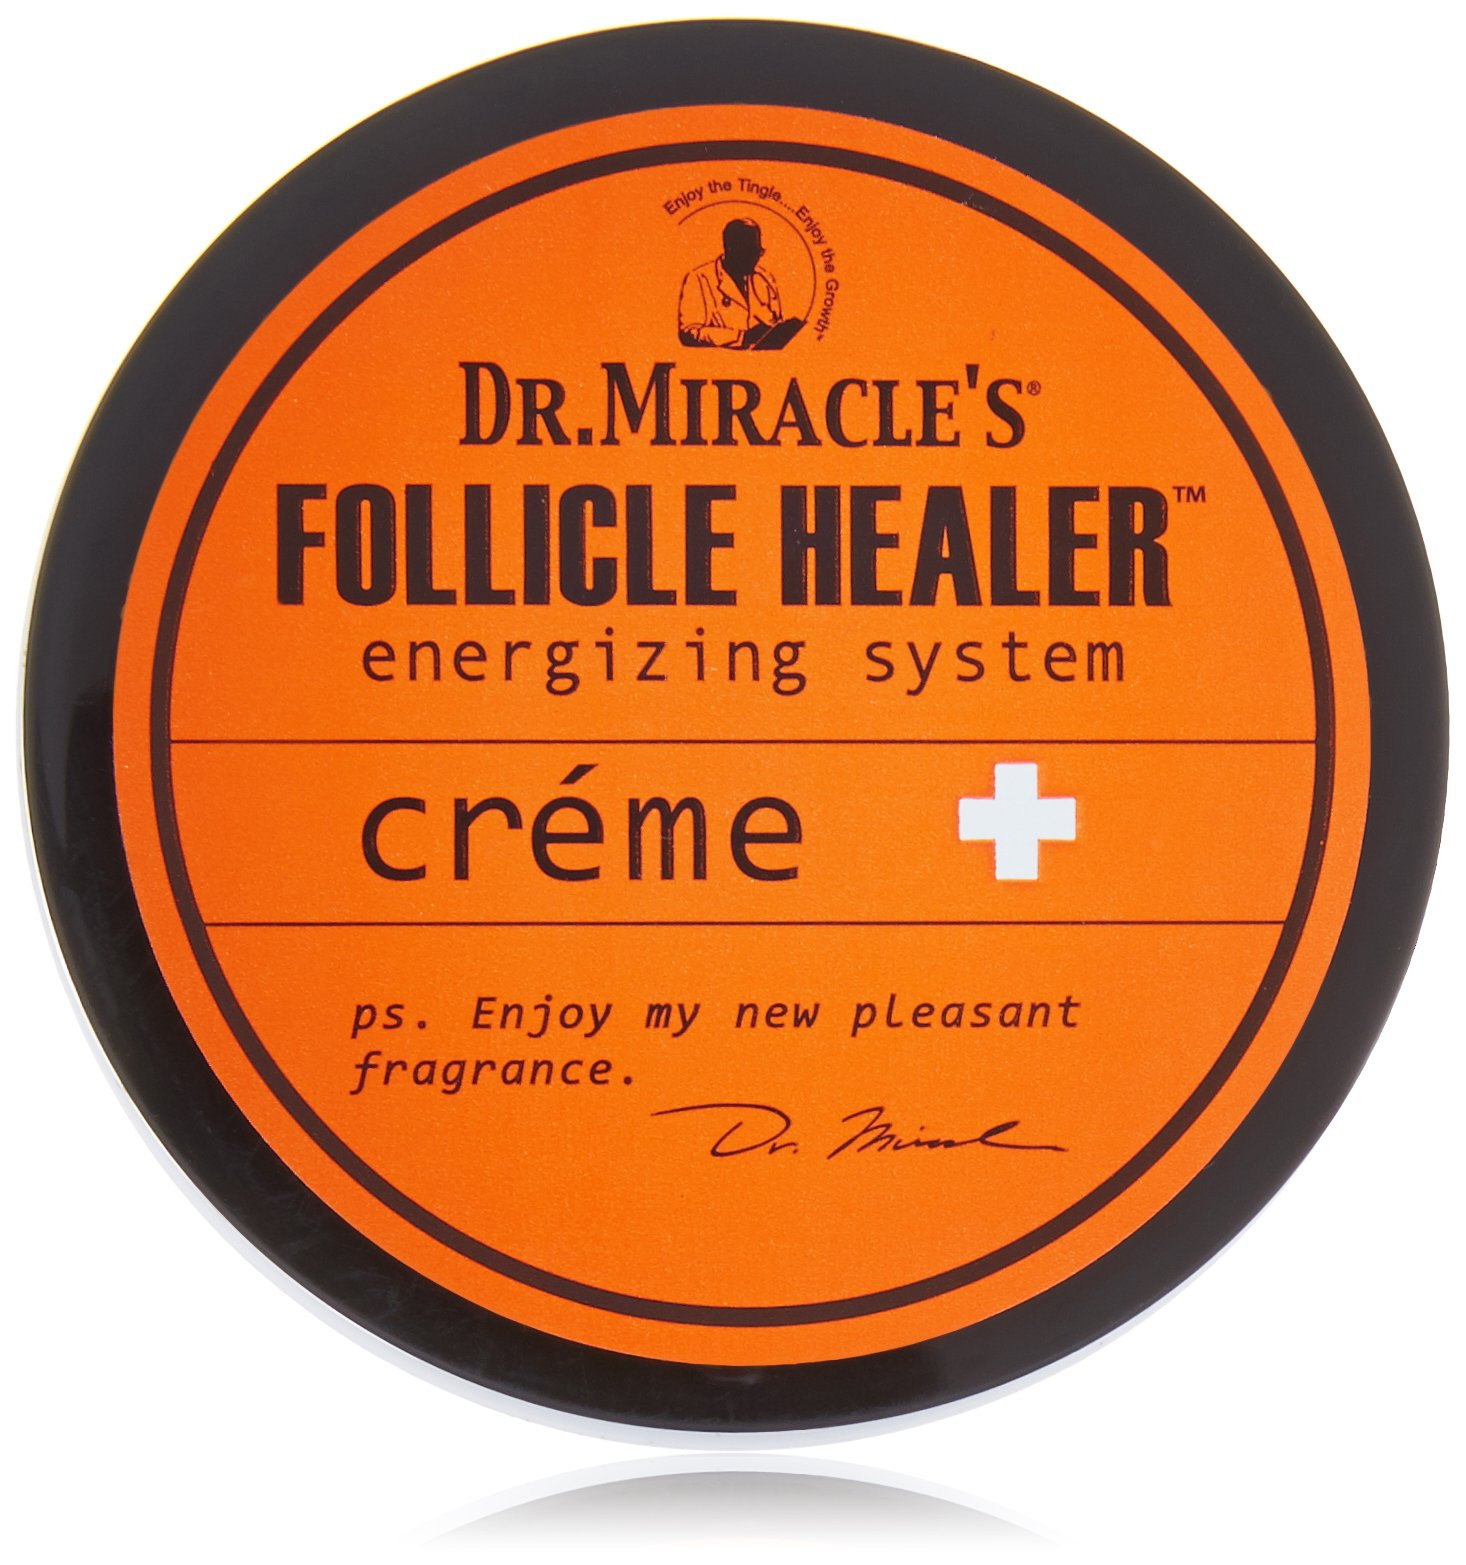 Dr. Miracle's Follicle Healer Creme, 2 Ounce by Dr. Miracle's